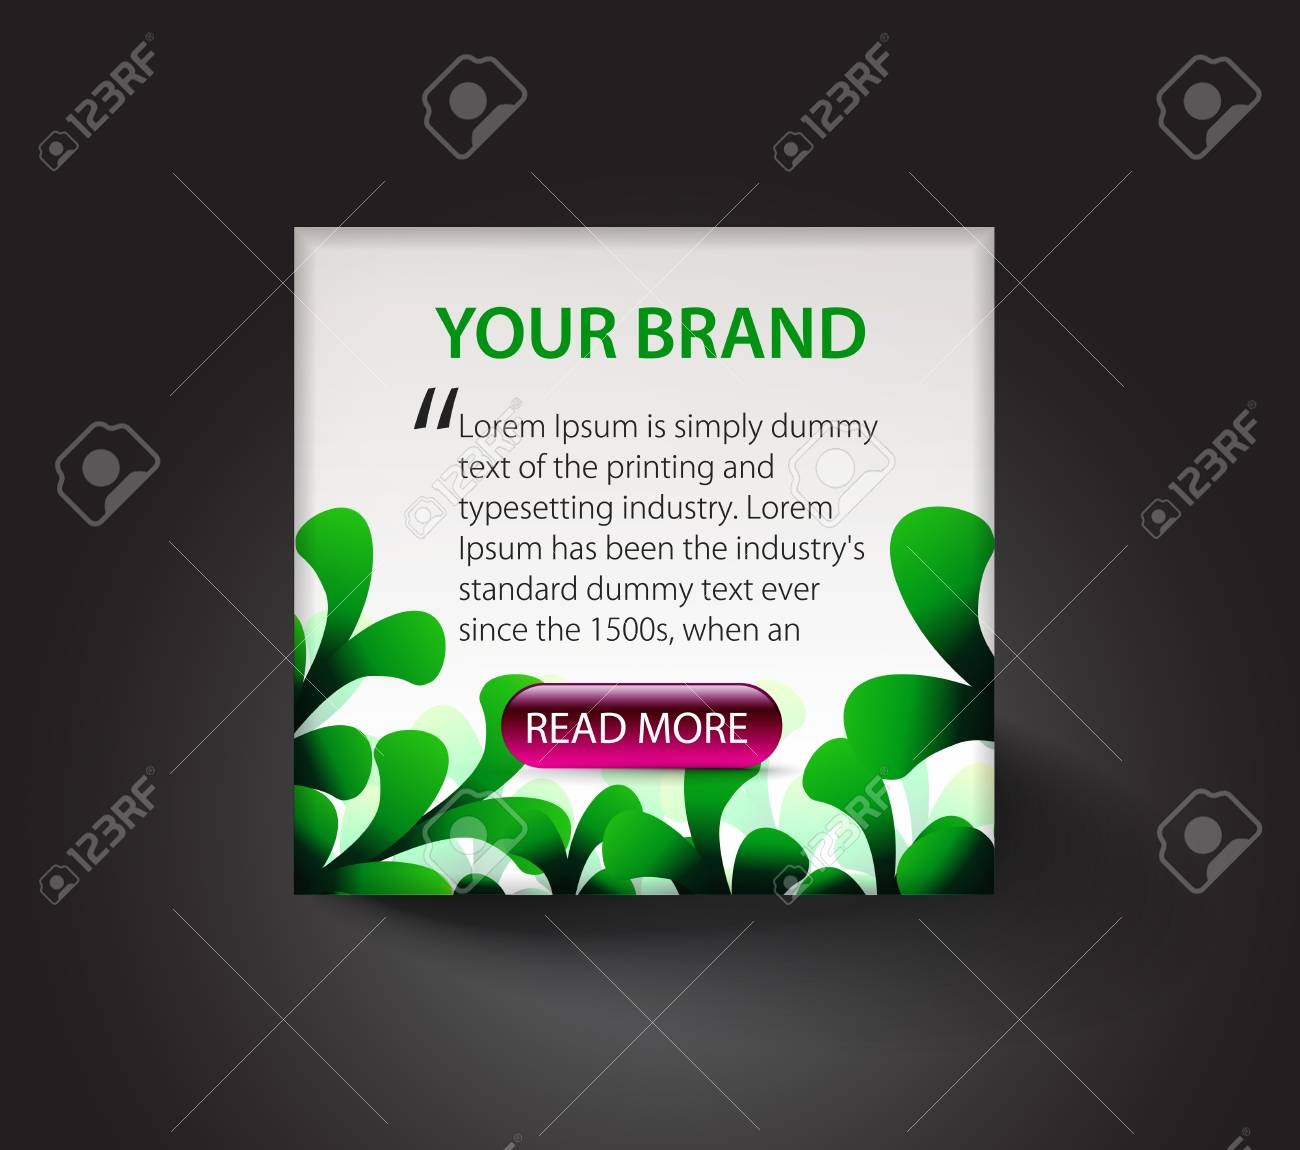 advertis layout design template for business document elements design use. Stock Vector - 8958368